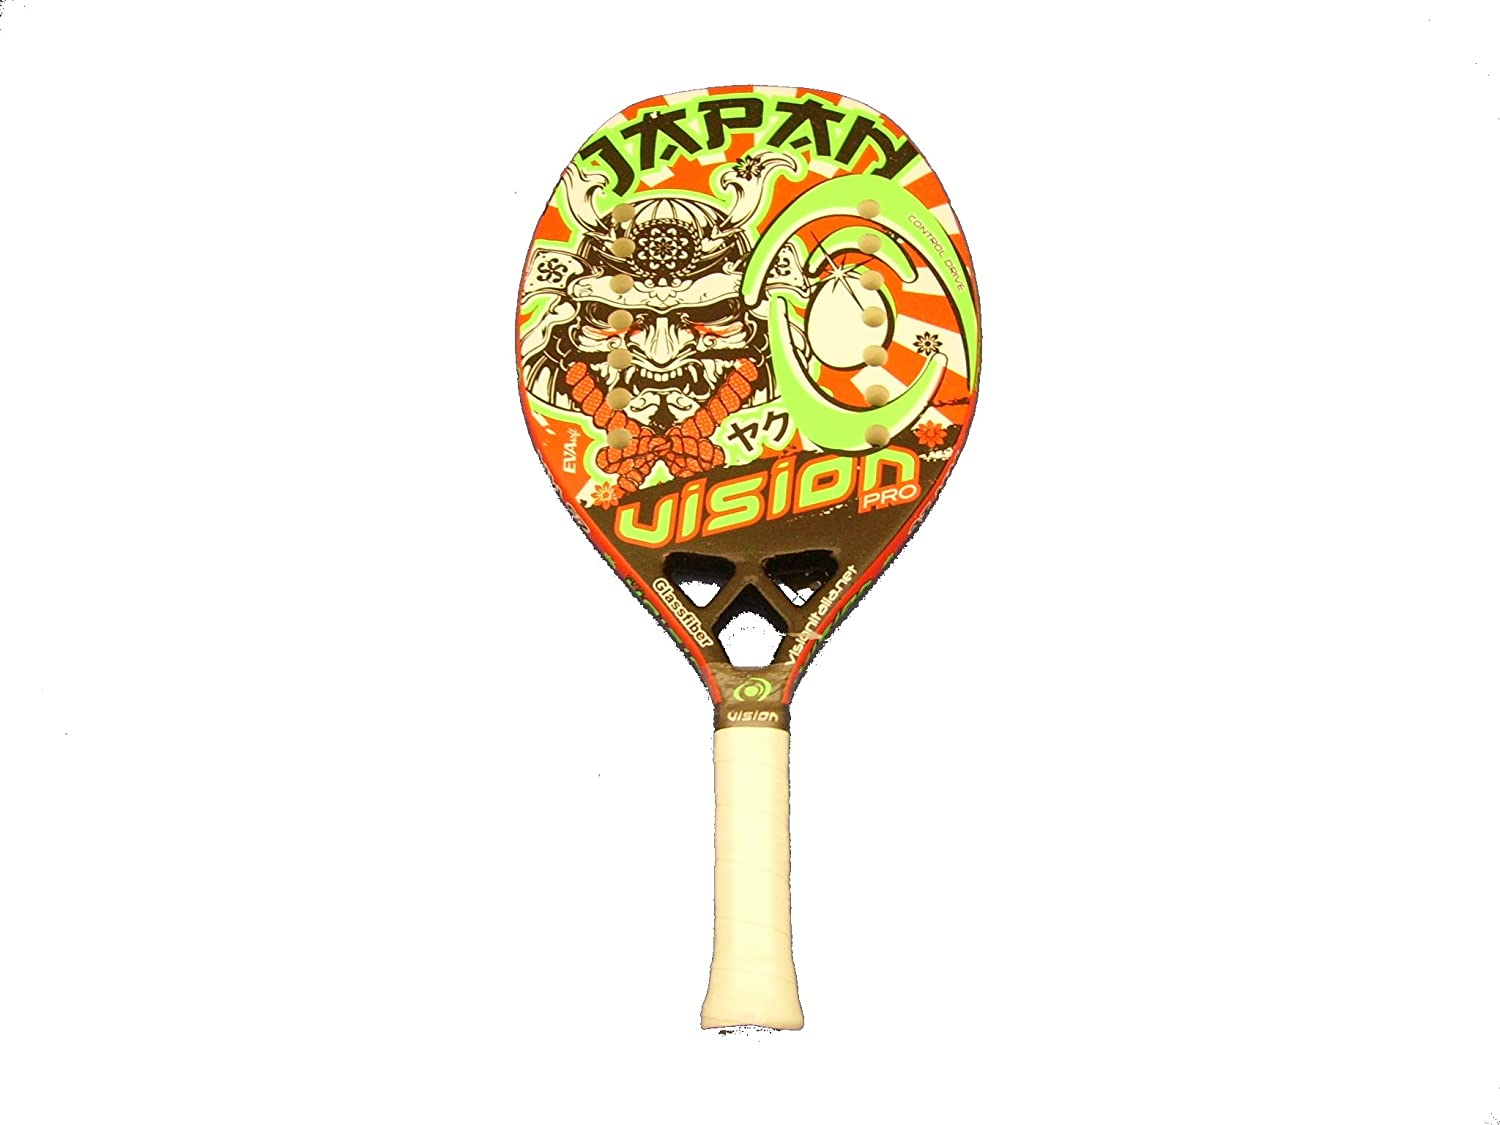 Vision Japan 2017 - Raqueta para beach tenis: Amazon.es: Deportes ...